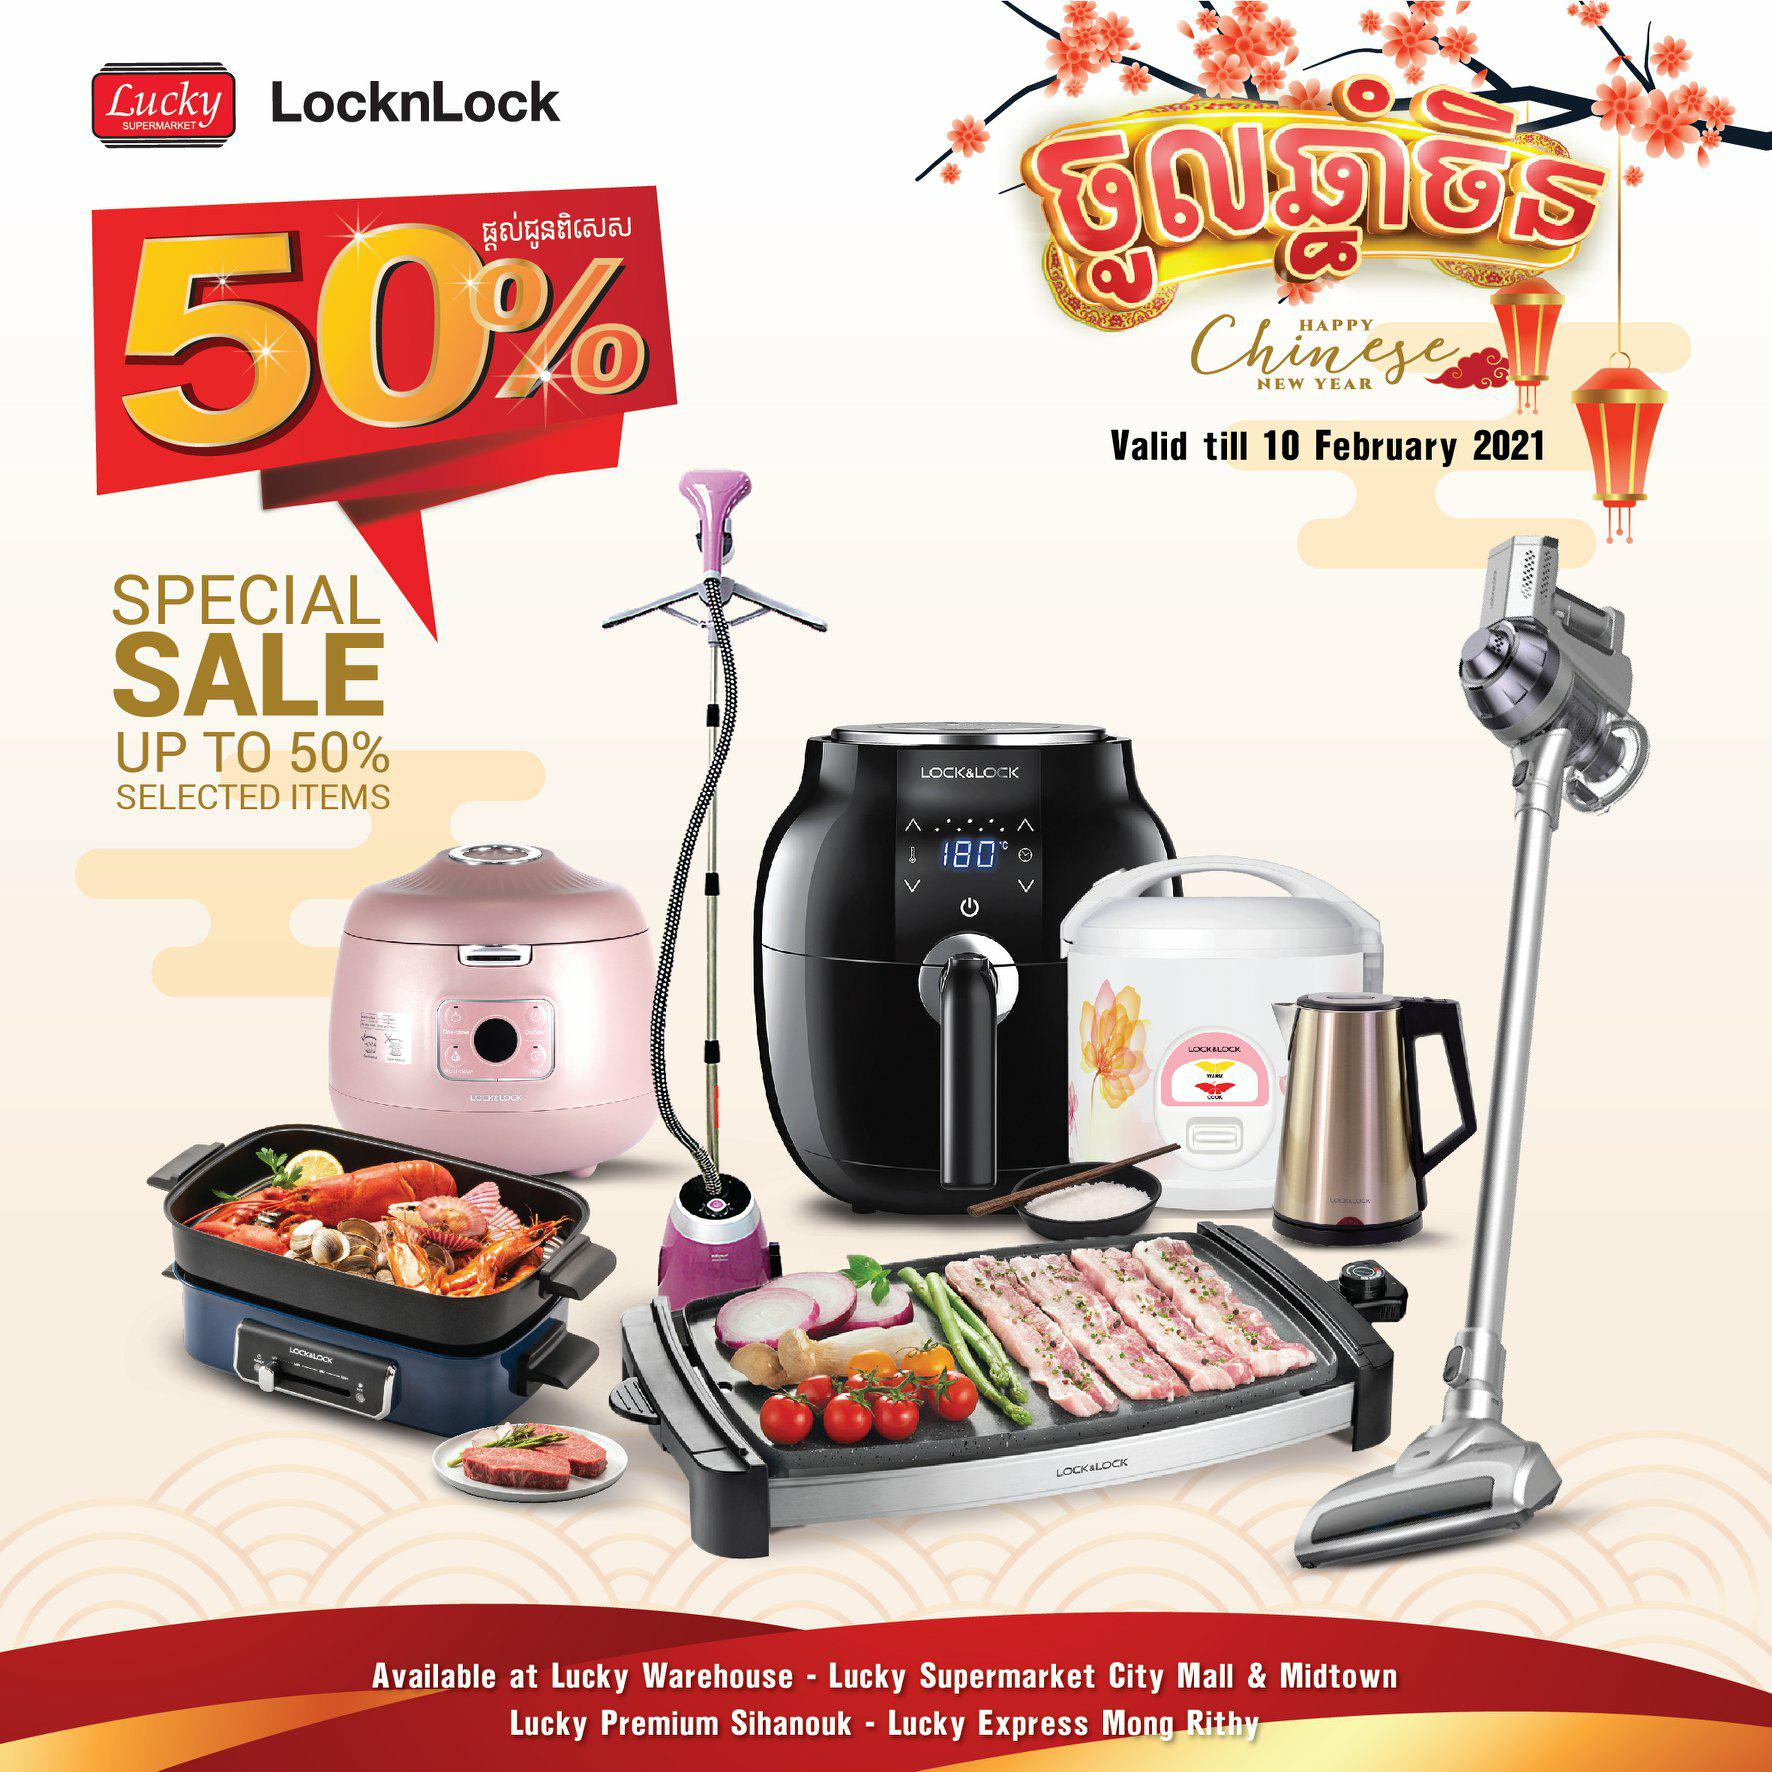 Special Sale Up to 50%